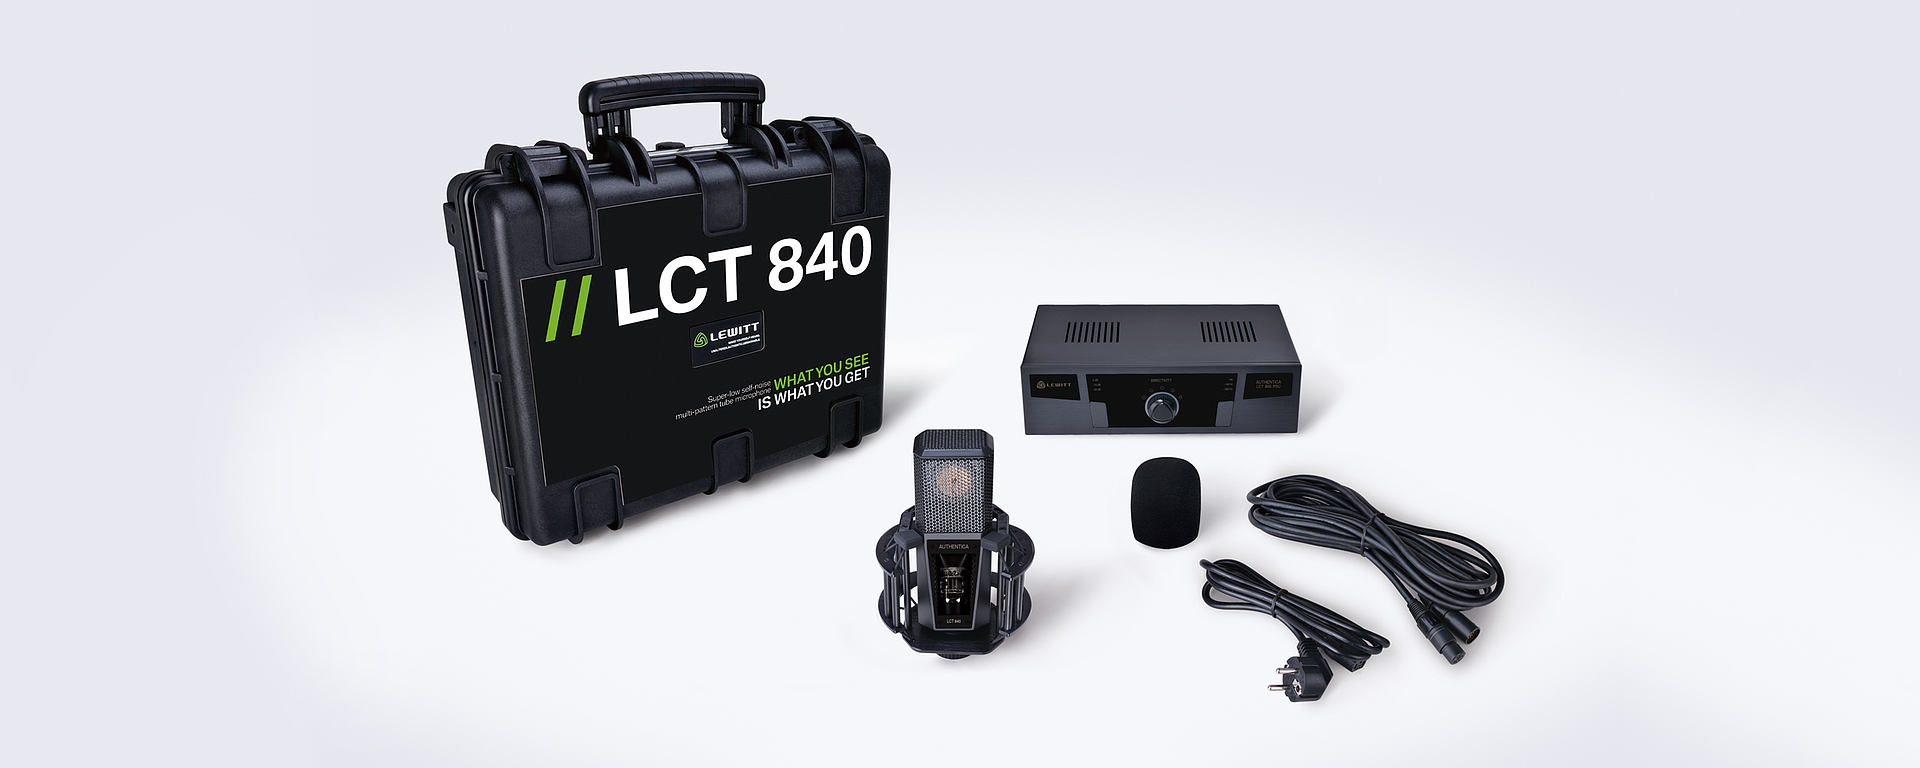 LCT 840 box content